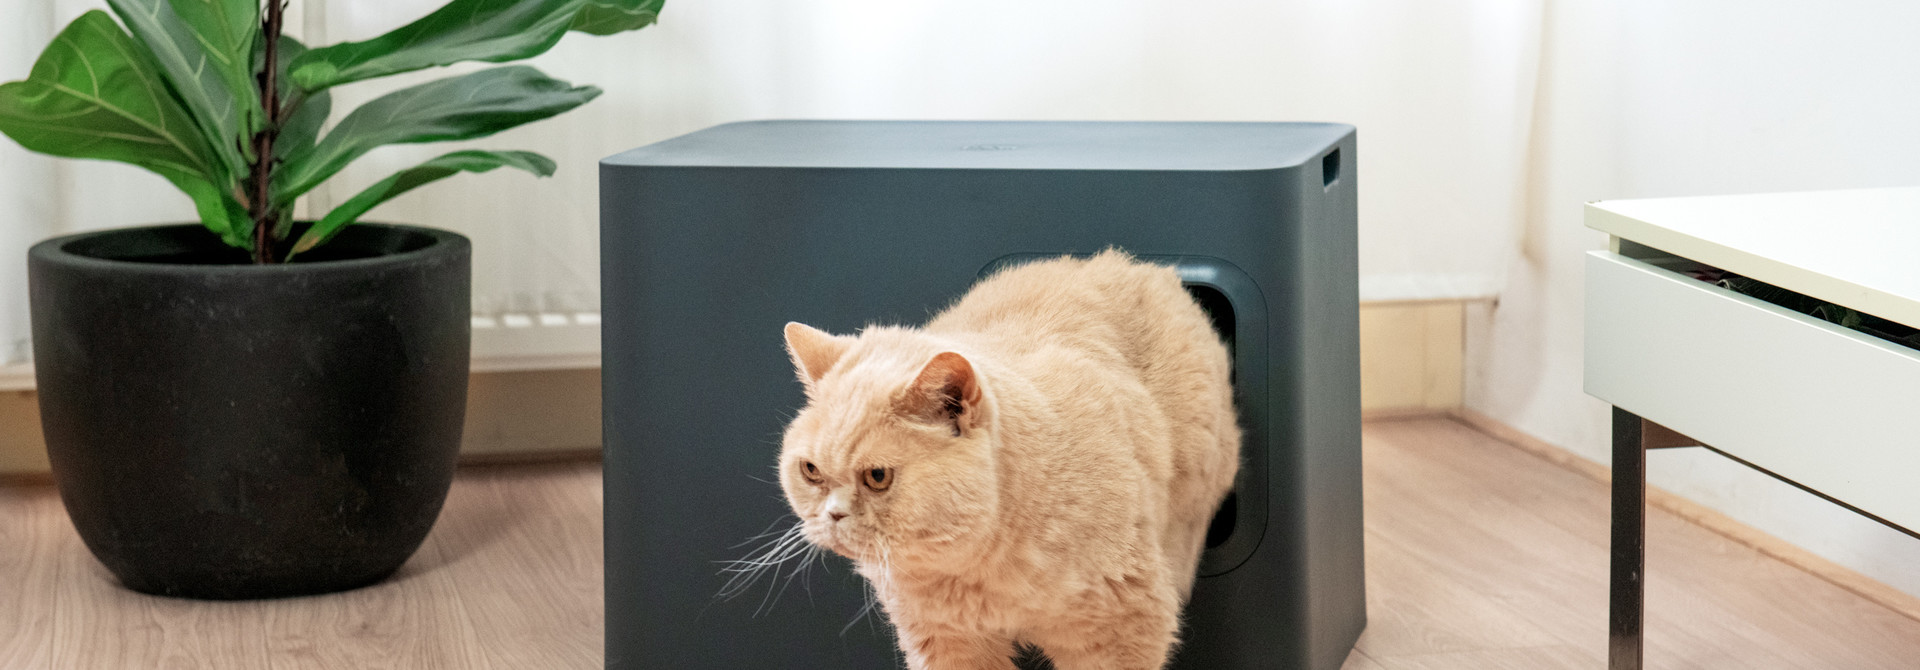 The risks of a dirty litter box at a glance